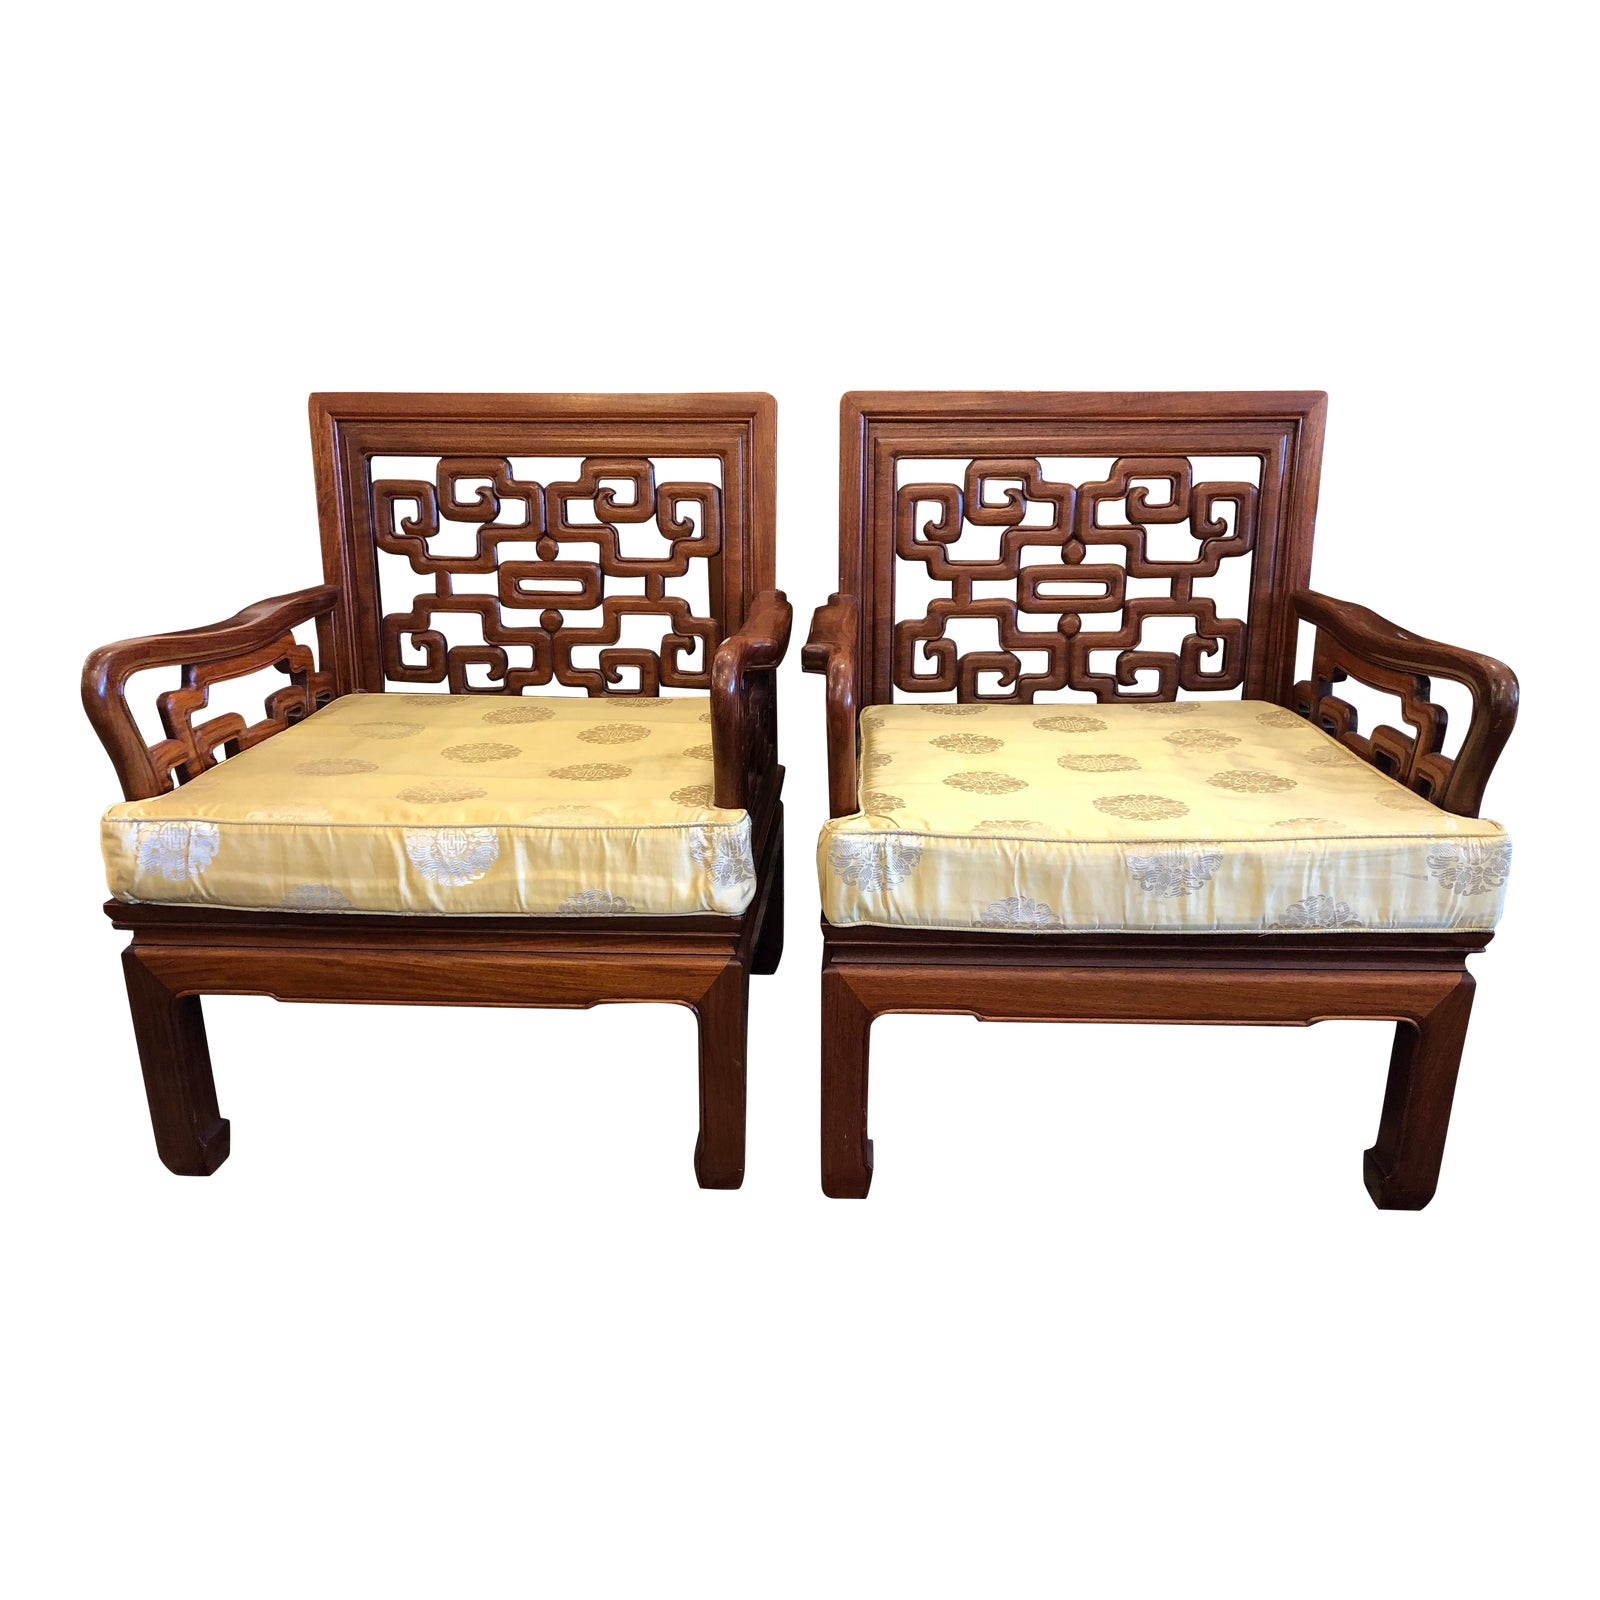 Asian Rosewood Chairs A Pair Design Plus Gallery